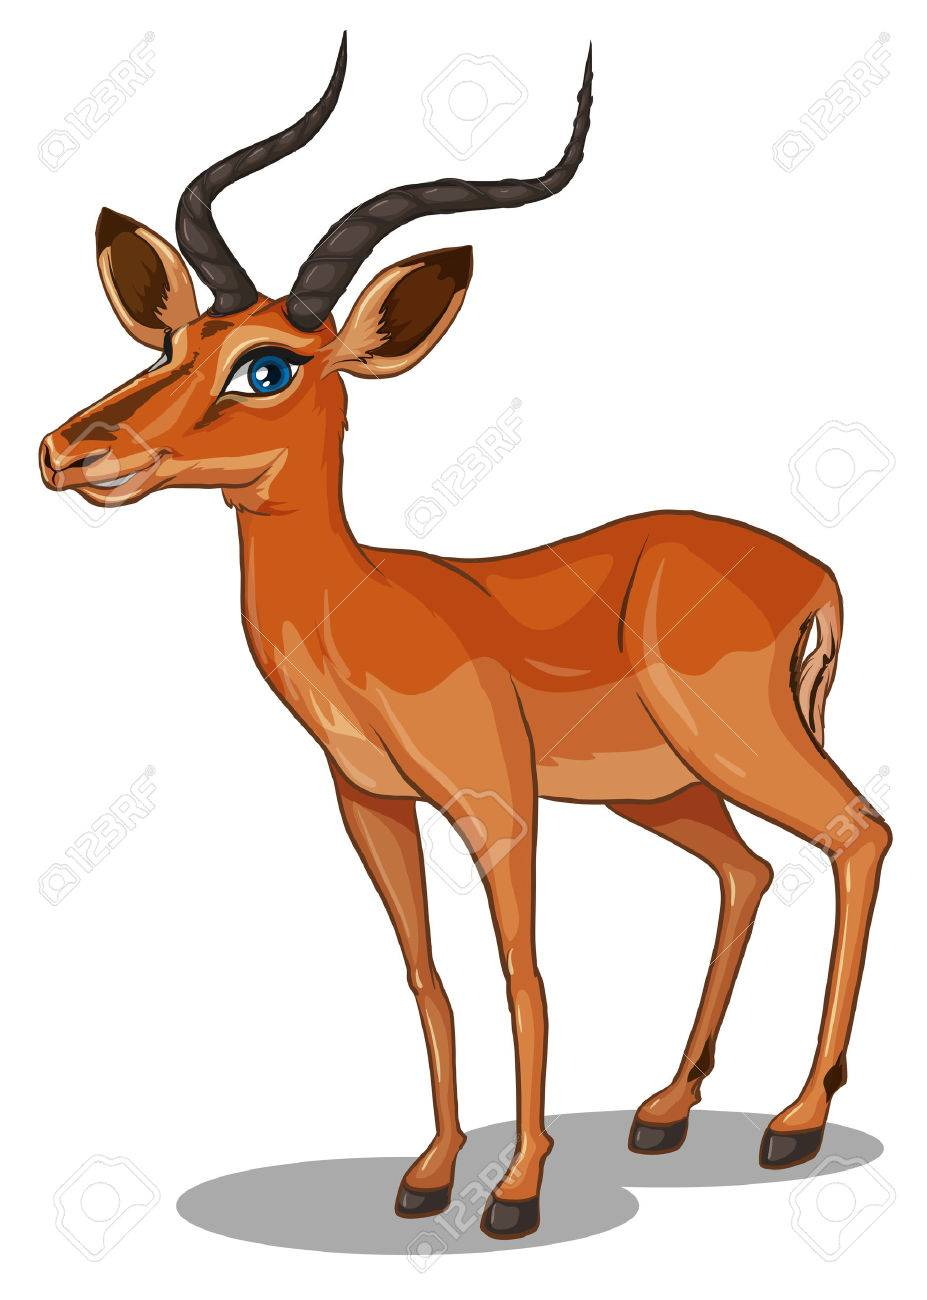 Illustration of a close up gazelle Stock Vector - 34641400